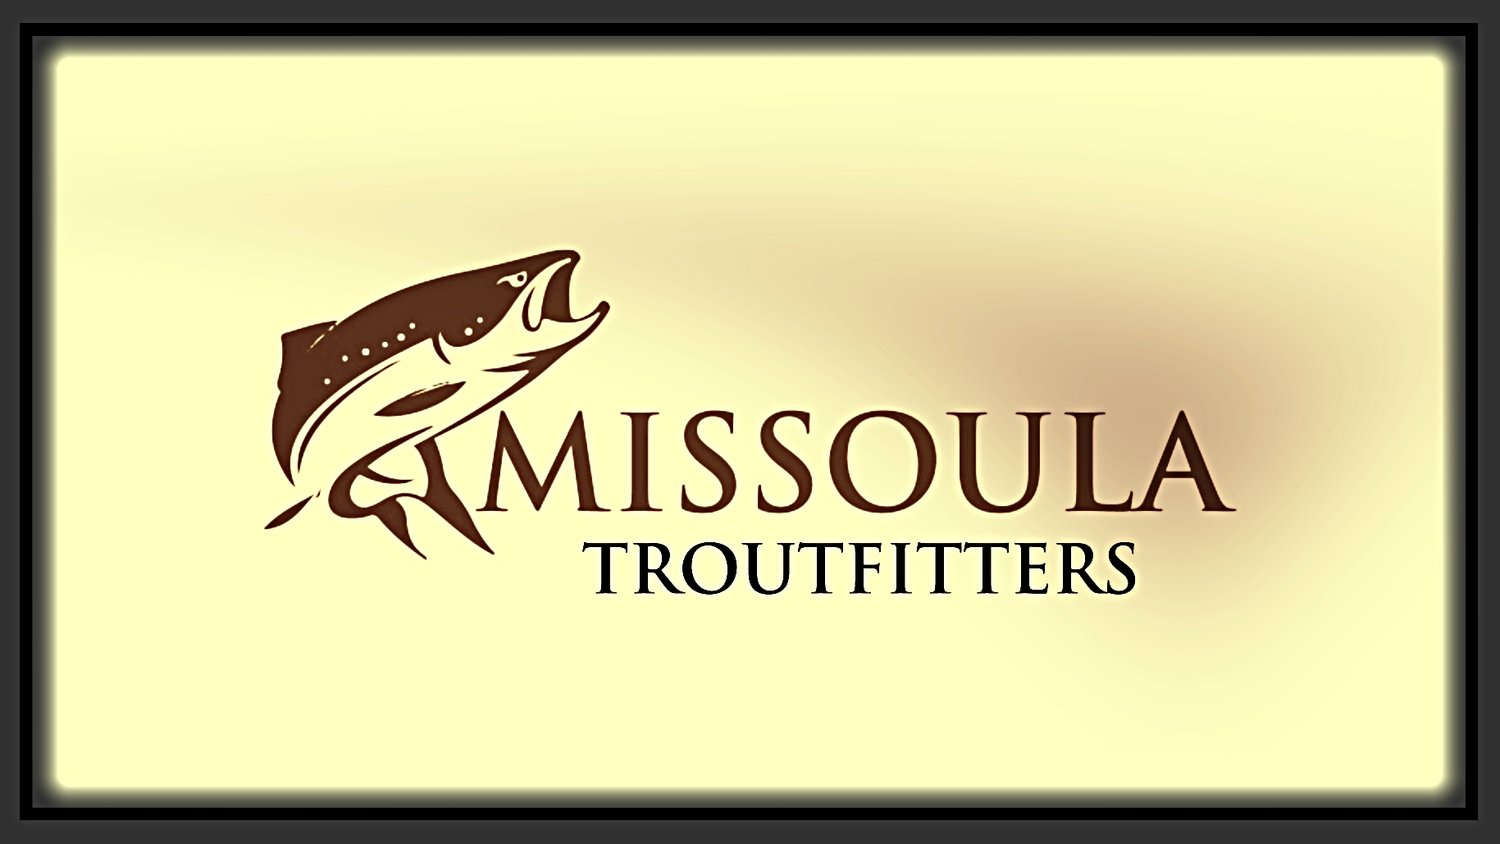 Missoula Troutfitters MT. Montana Fly Fishing Outfitter